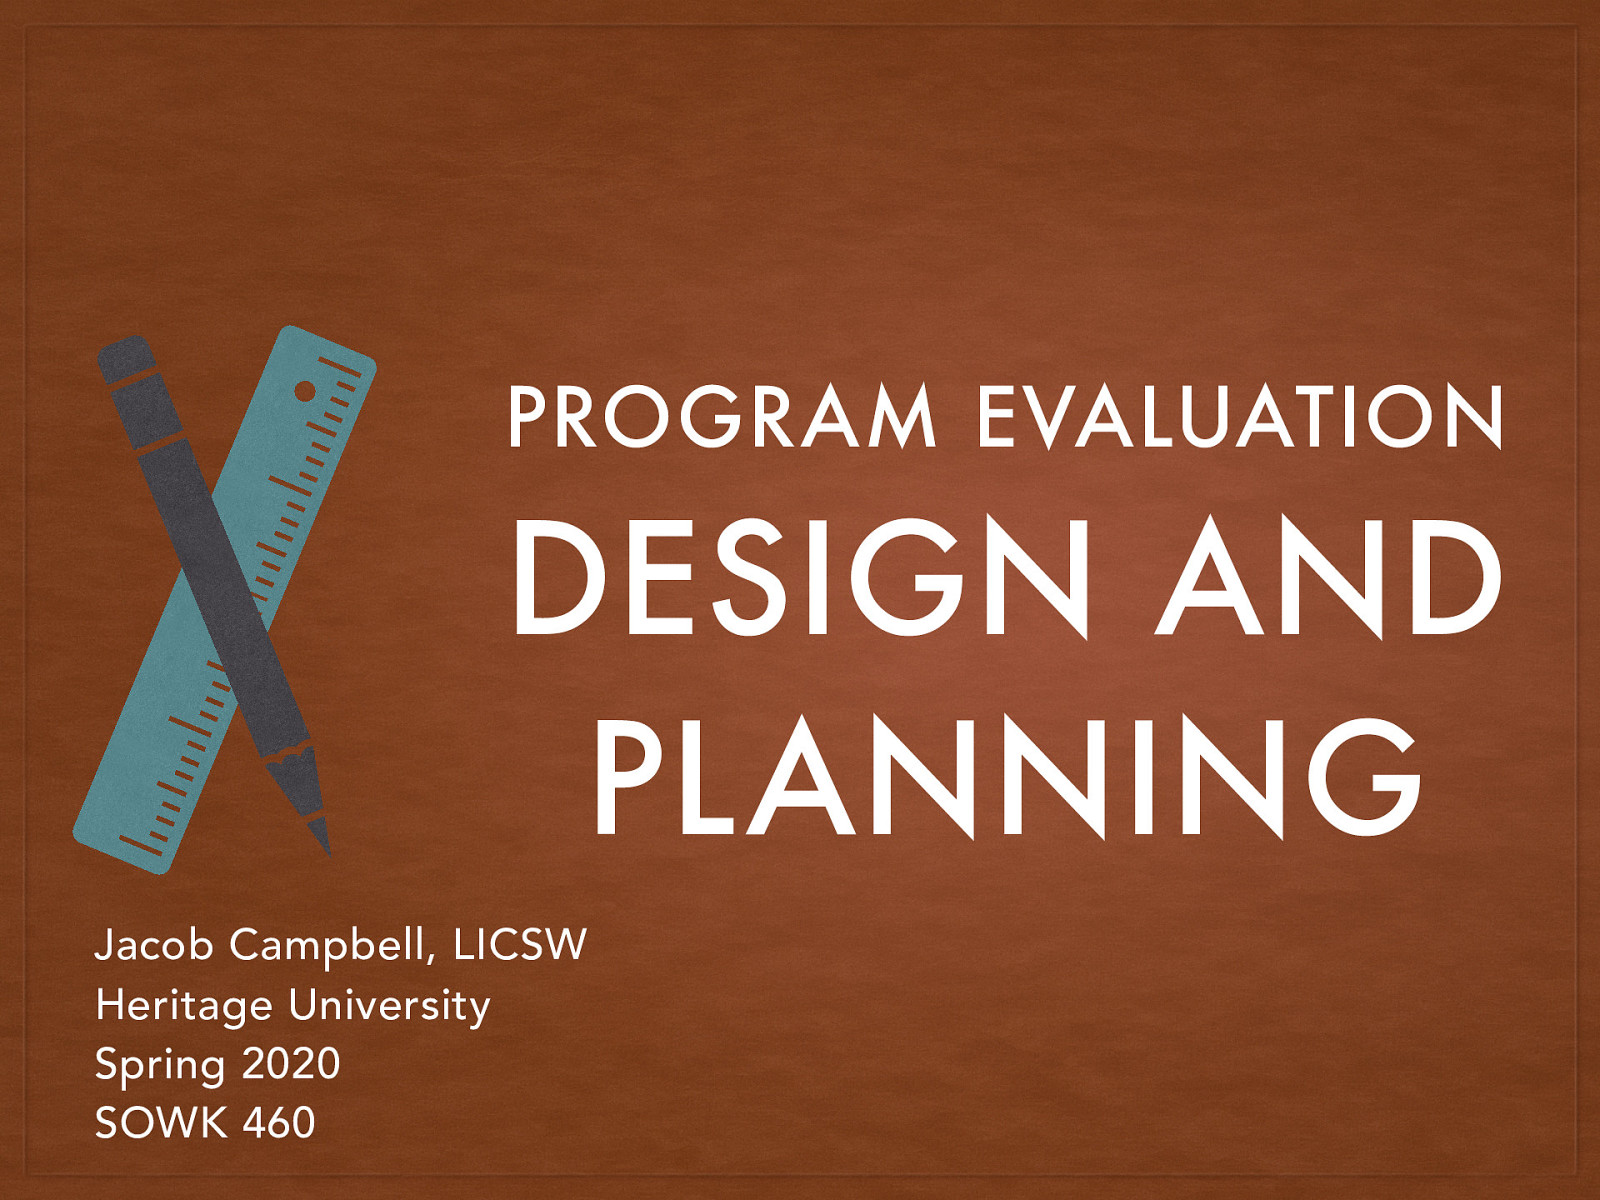 Week 07 - Program Evaluation Design and Planning